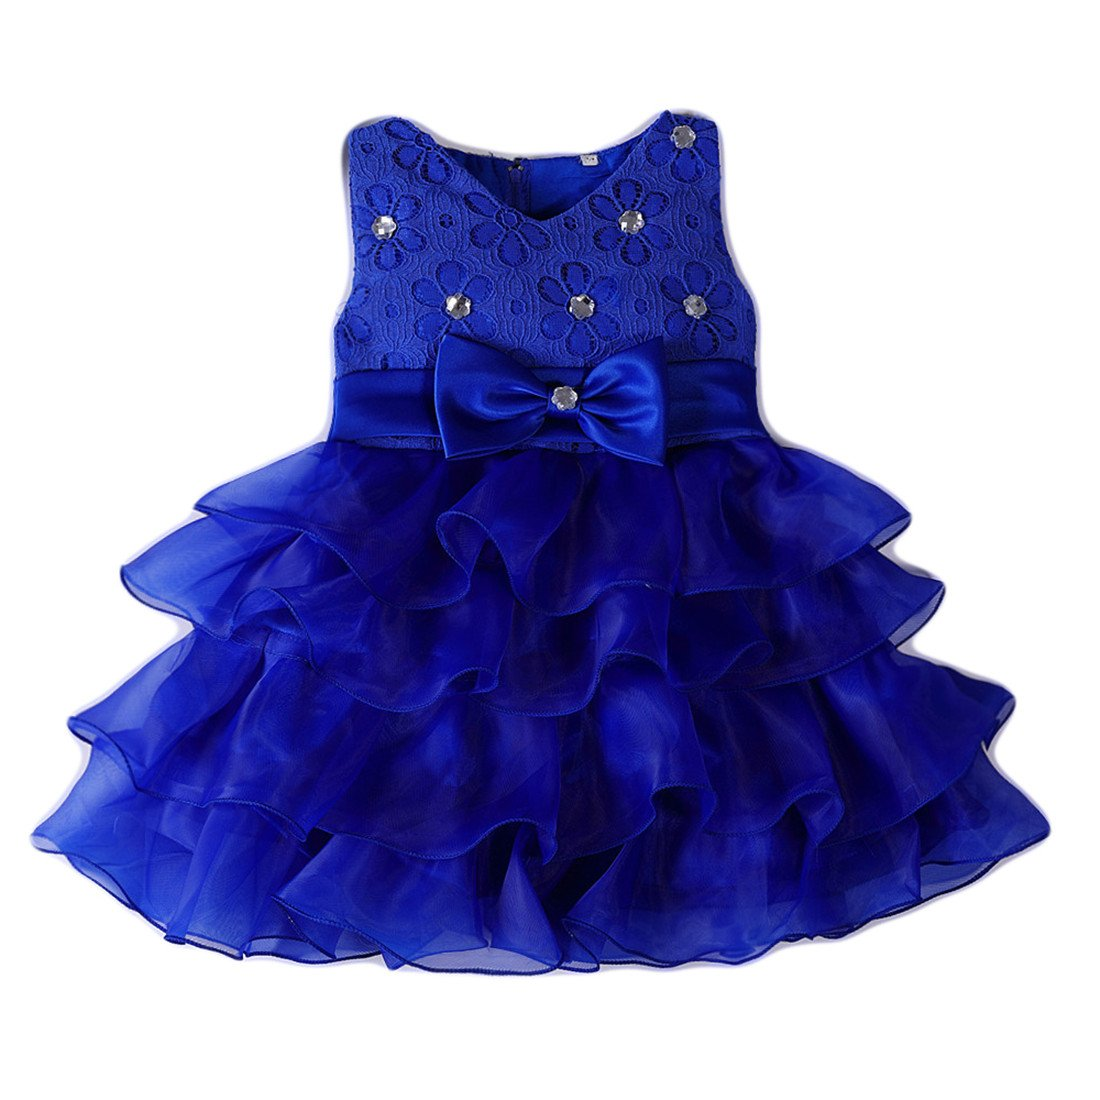 231bfb492b81 Online Cheap wholesale FKKFYY 0-24 Months Baby Flower Girl Dress Kids  Ruffles Lace Party Wedding Dresses Special Occasion Suppliers